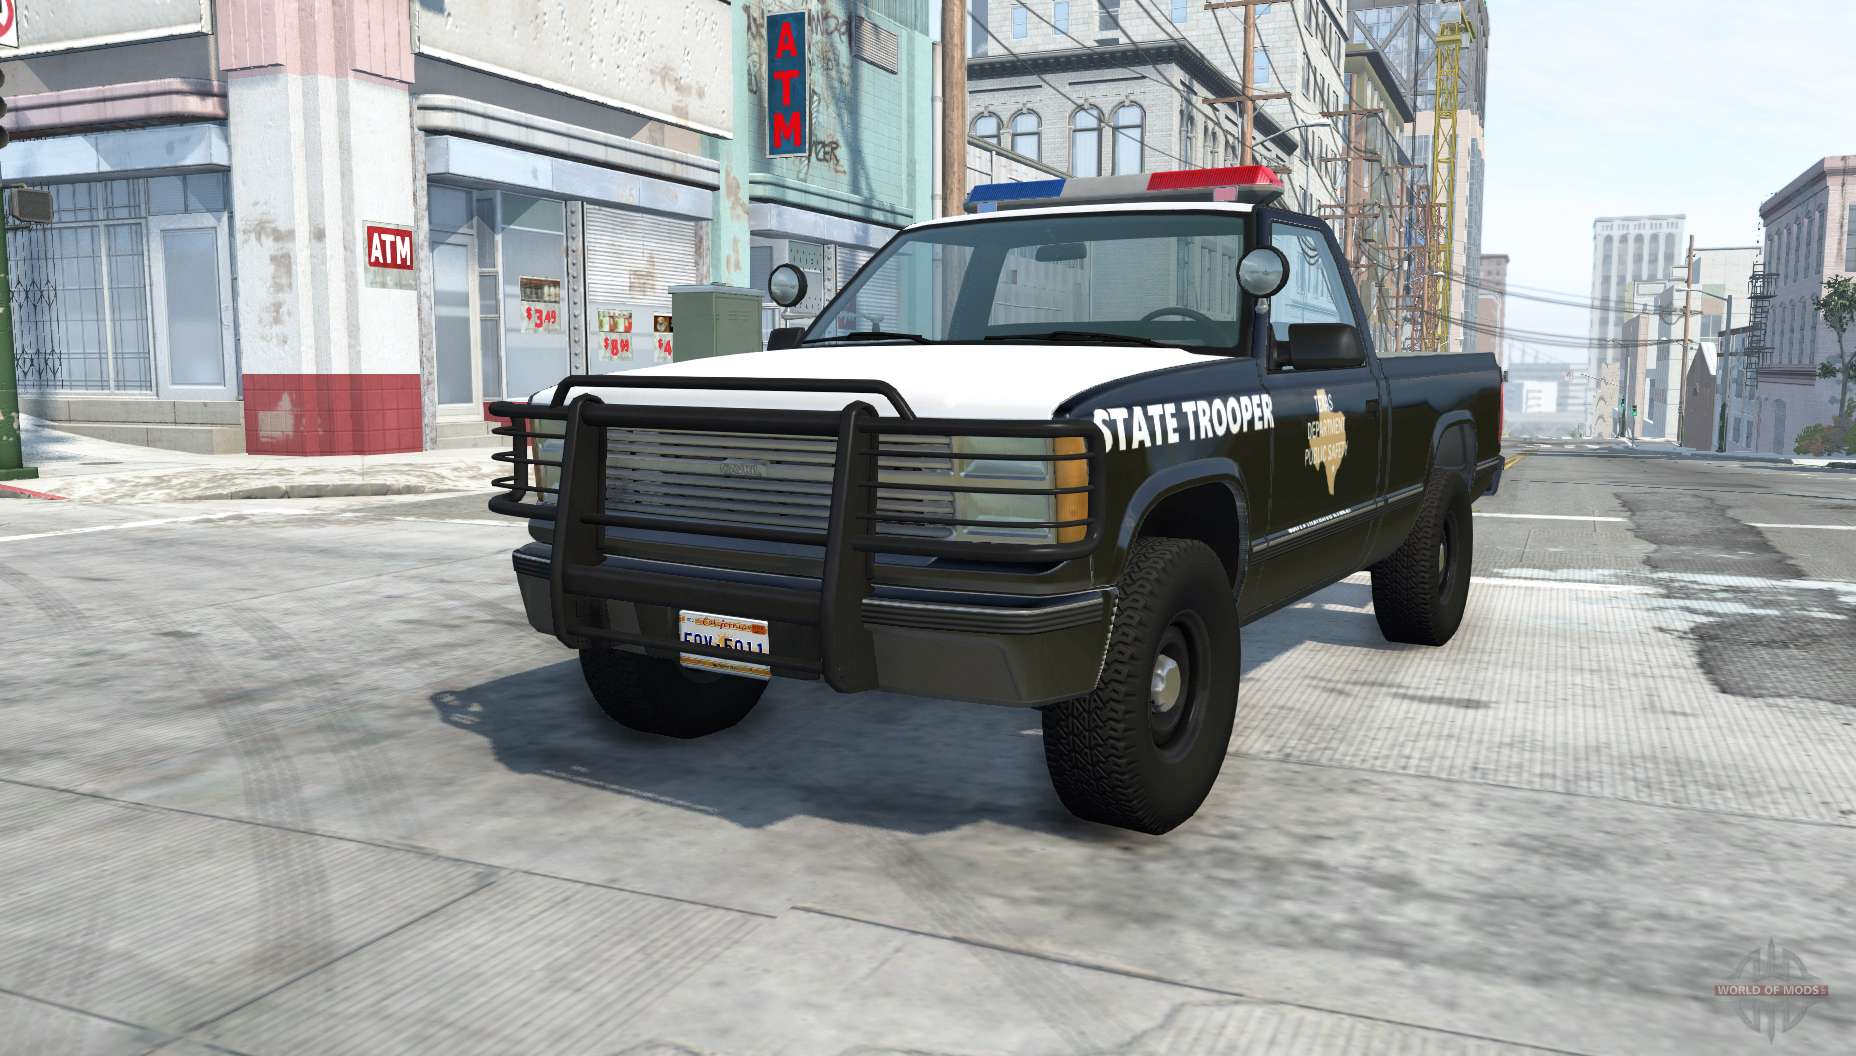 Nissan Ud Wrecker Flatbed Tow Truck Foot Bed W Wheel Lift additionally Chrysler Dodge Ram Lt Tires together with Cabover Freightliner Speed Cummins Motor Runs Good in addition Beamng Drive X likewise Chevron Rollback Bed. on pick up tow truck